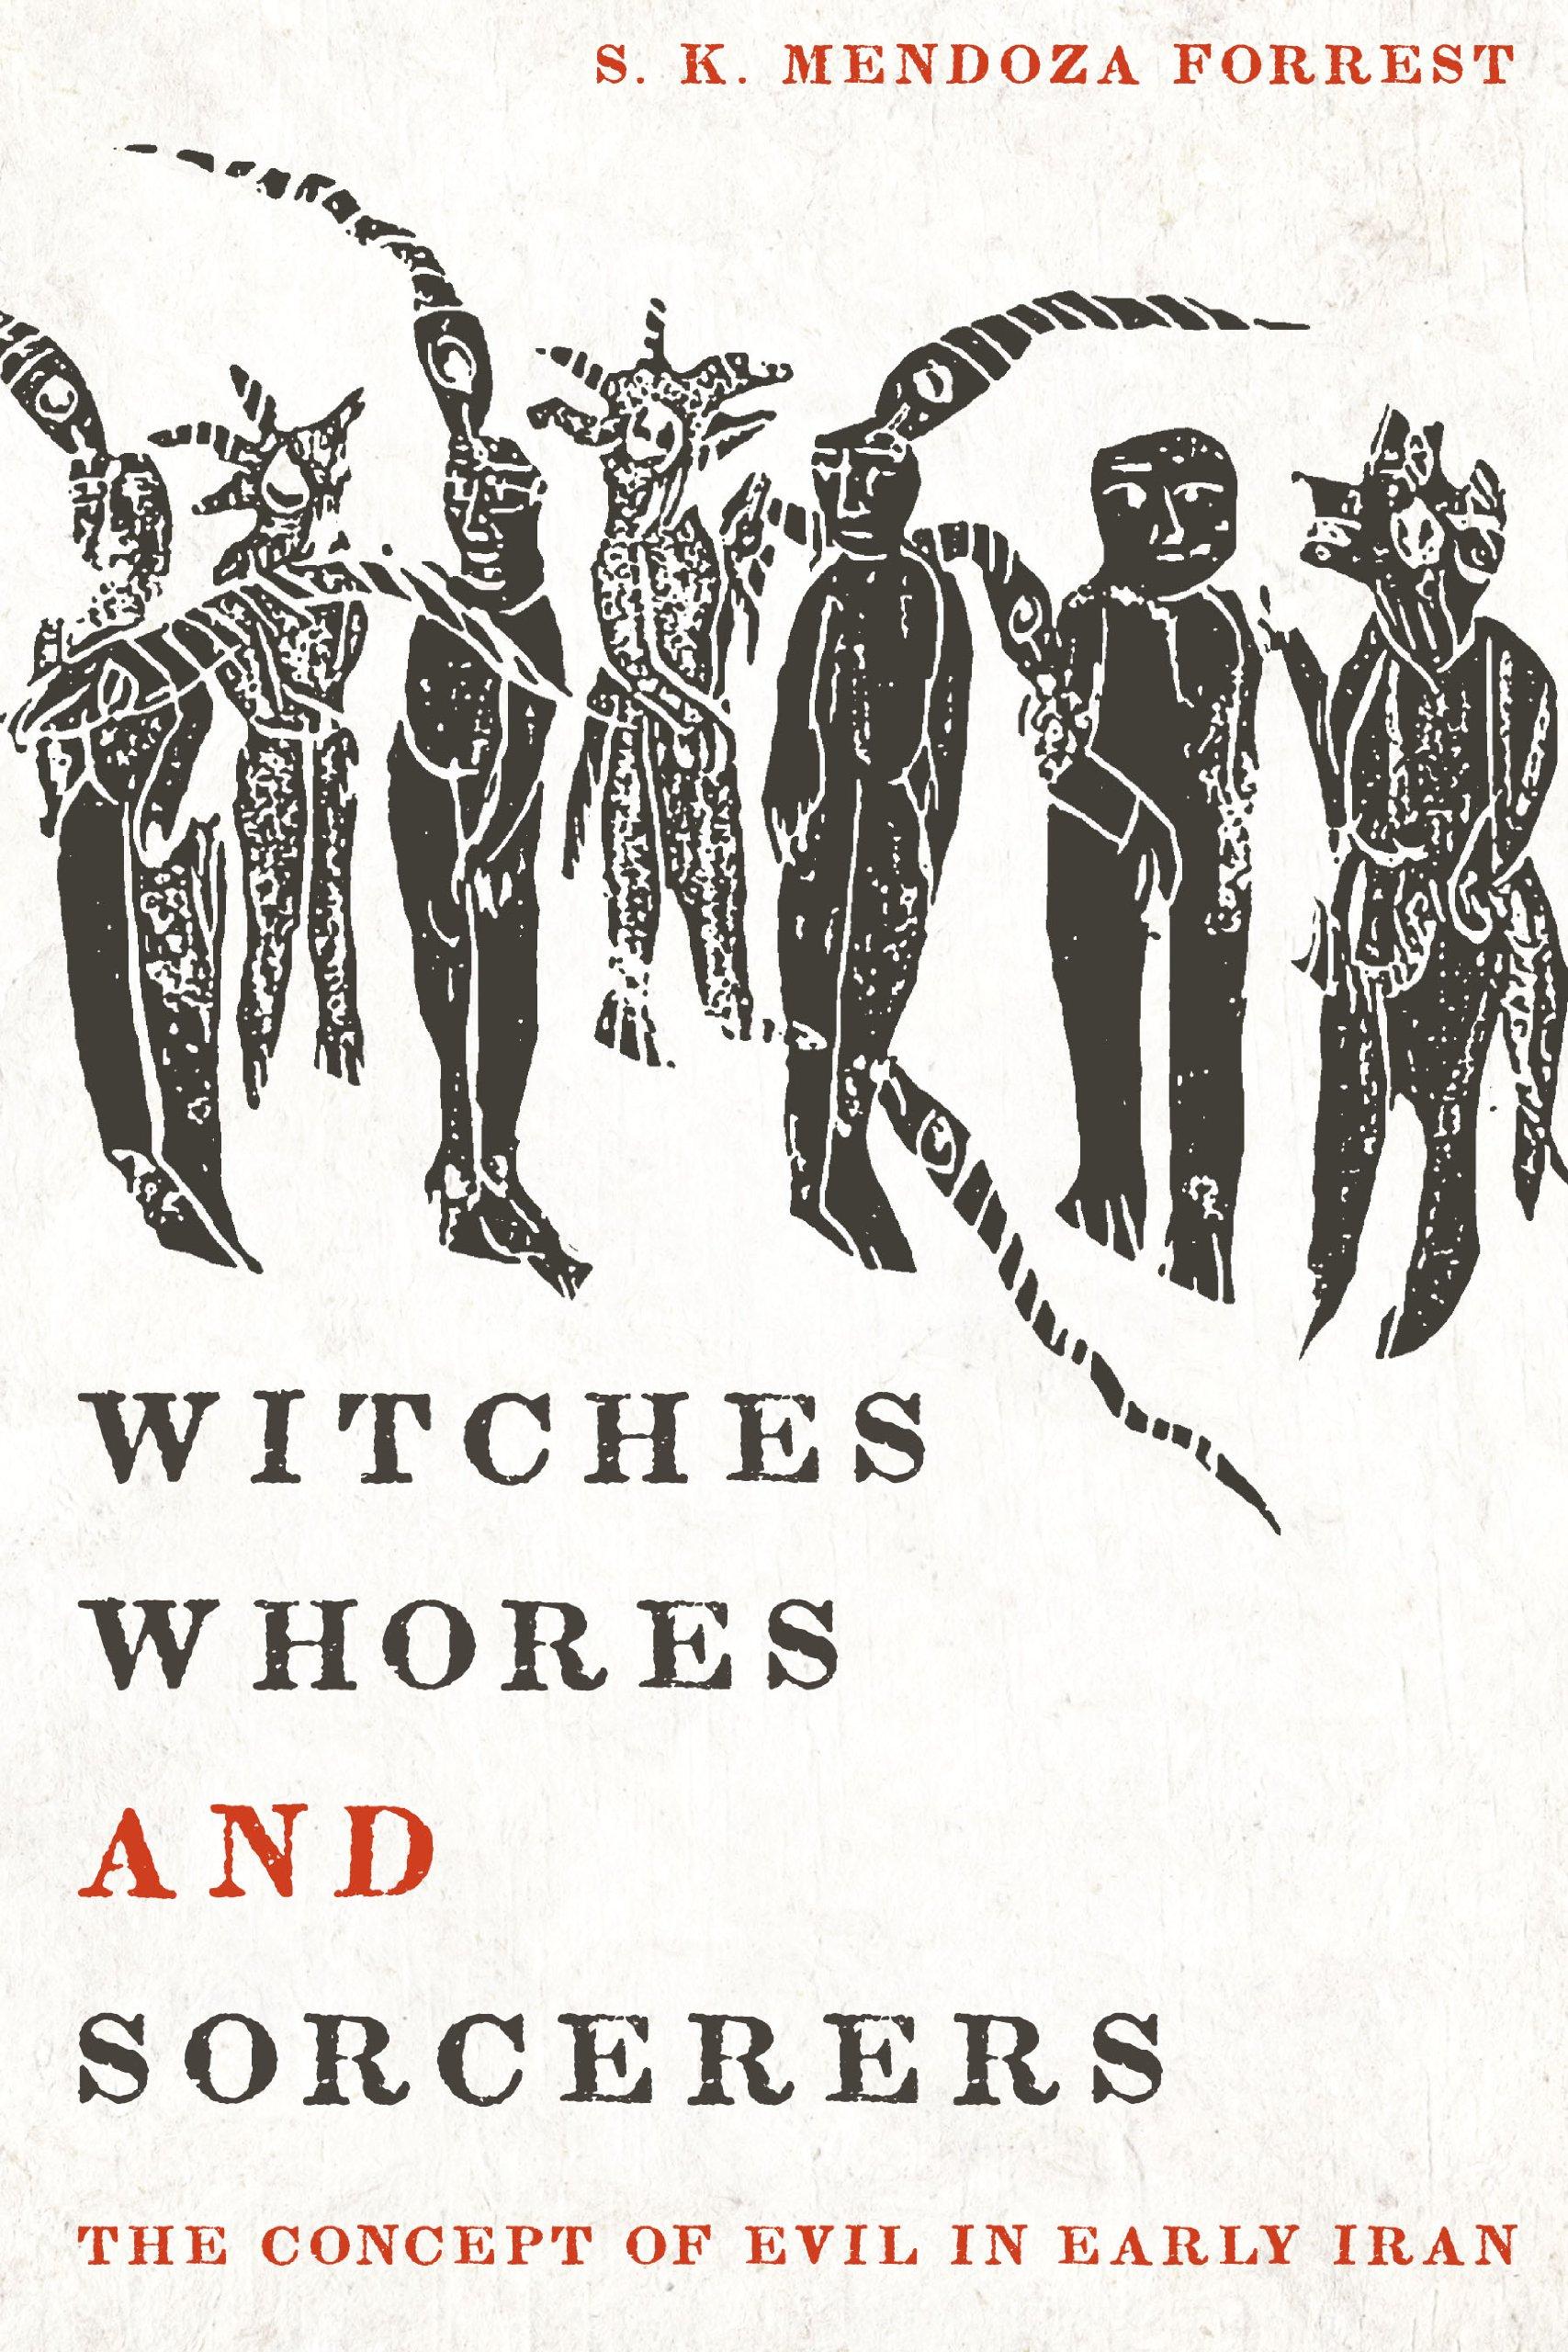 Witches, Whores, and Sorcerers